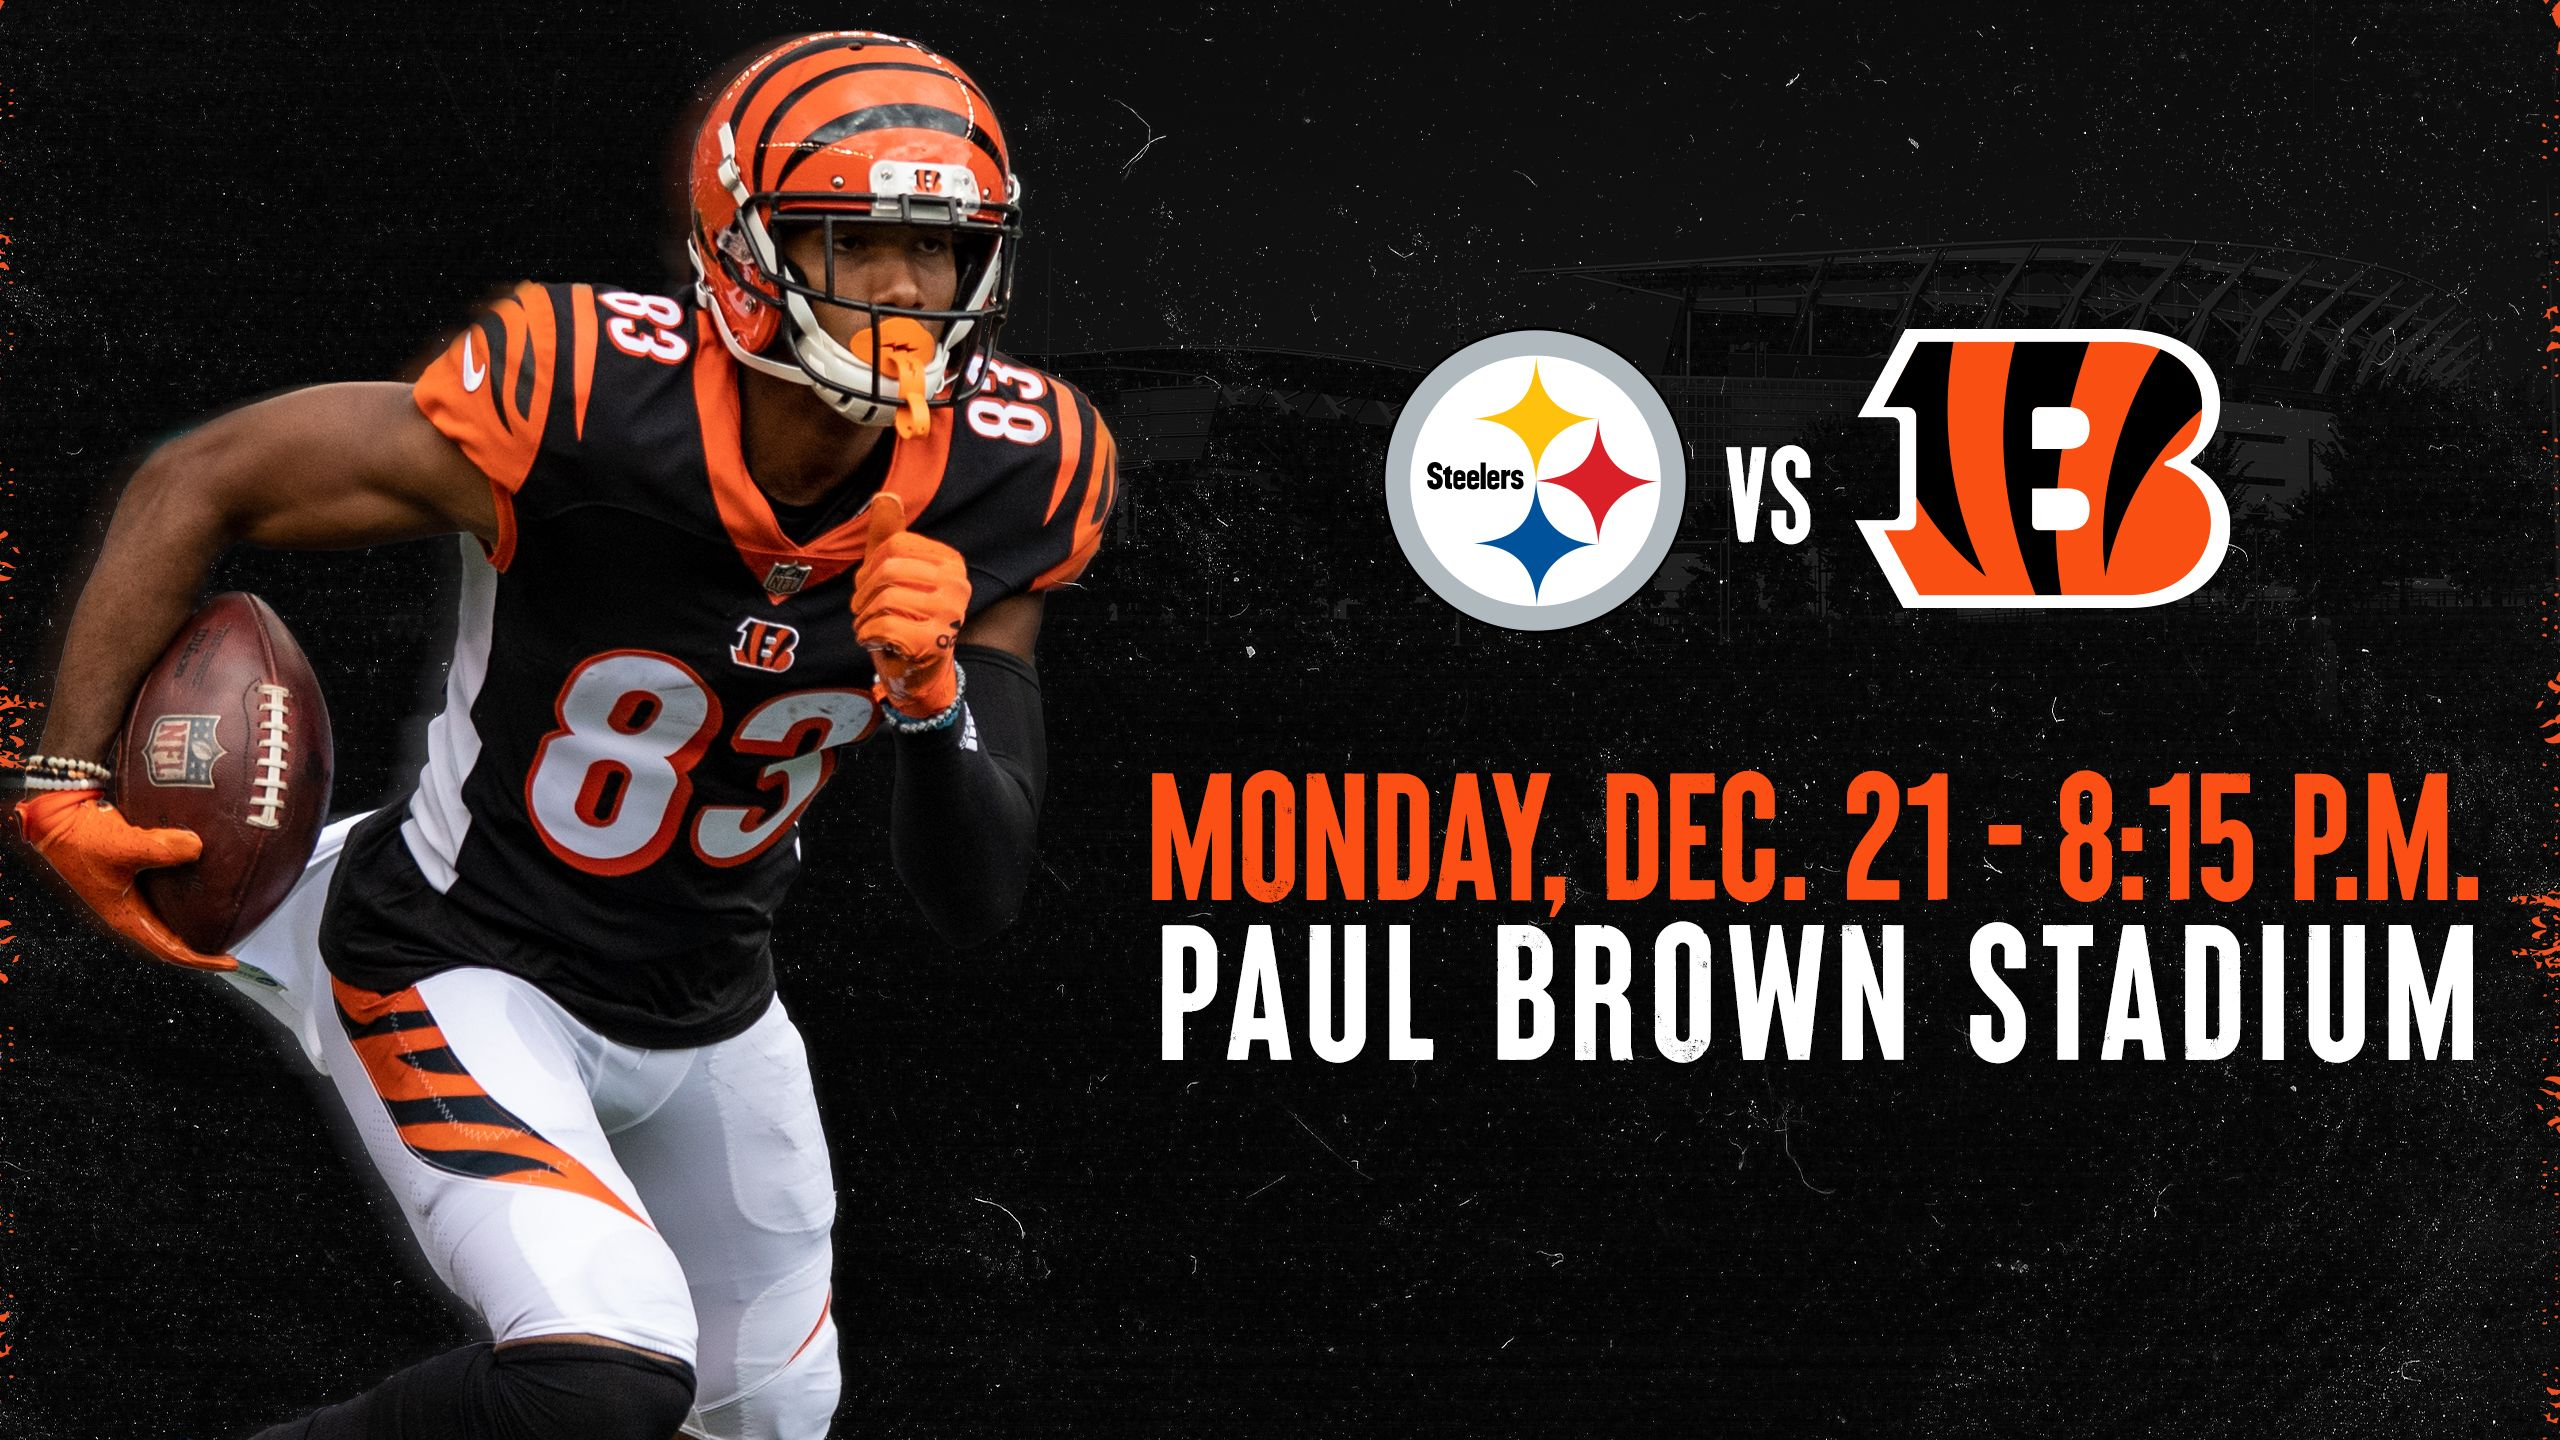 Bengals vs. Steelers | Monday, Dec. 21, 2020